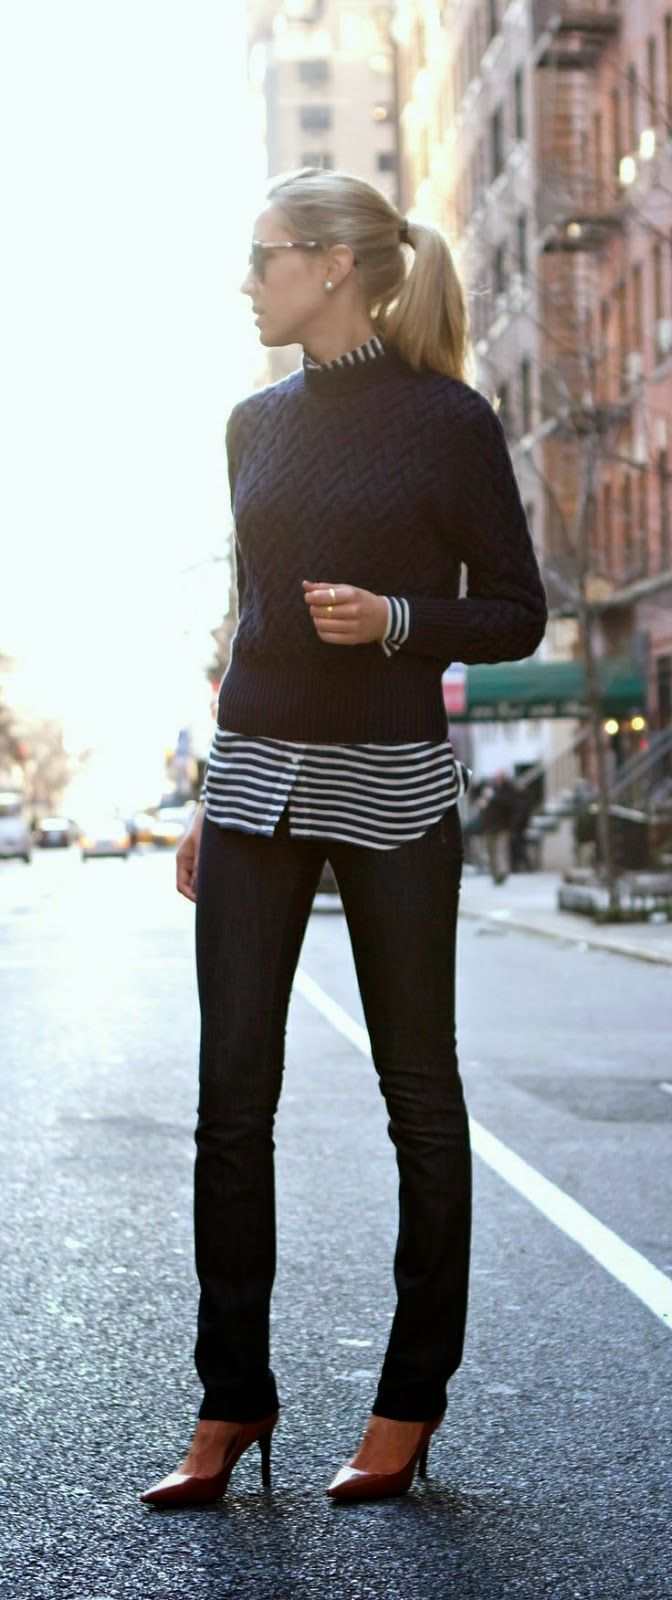 Trend To Wear: Edgy street fashion style